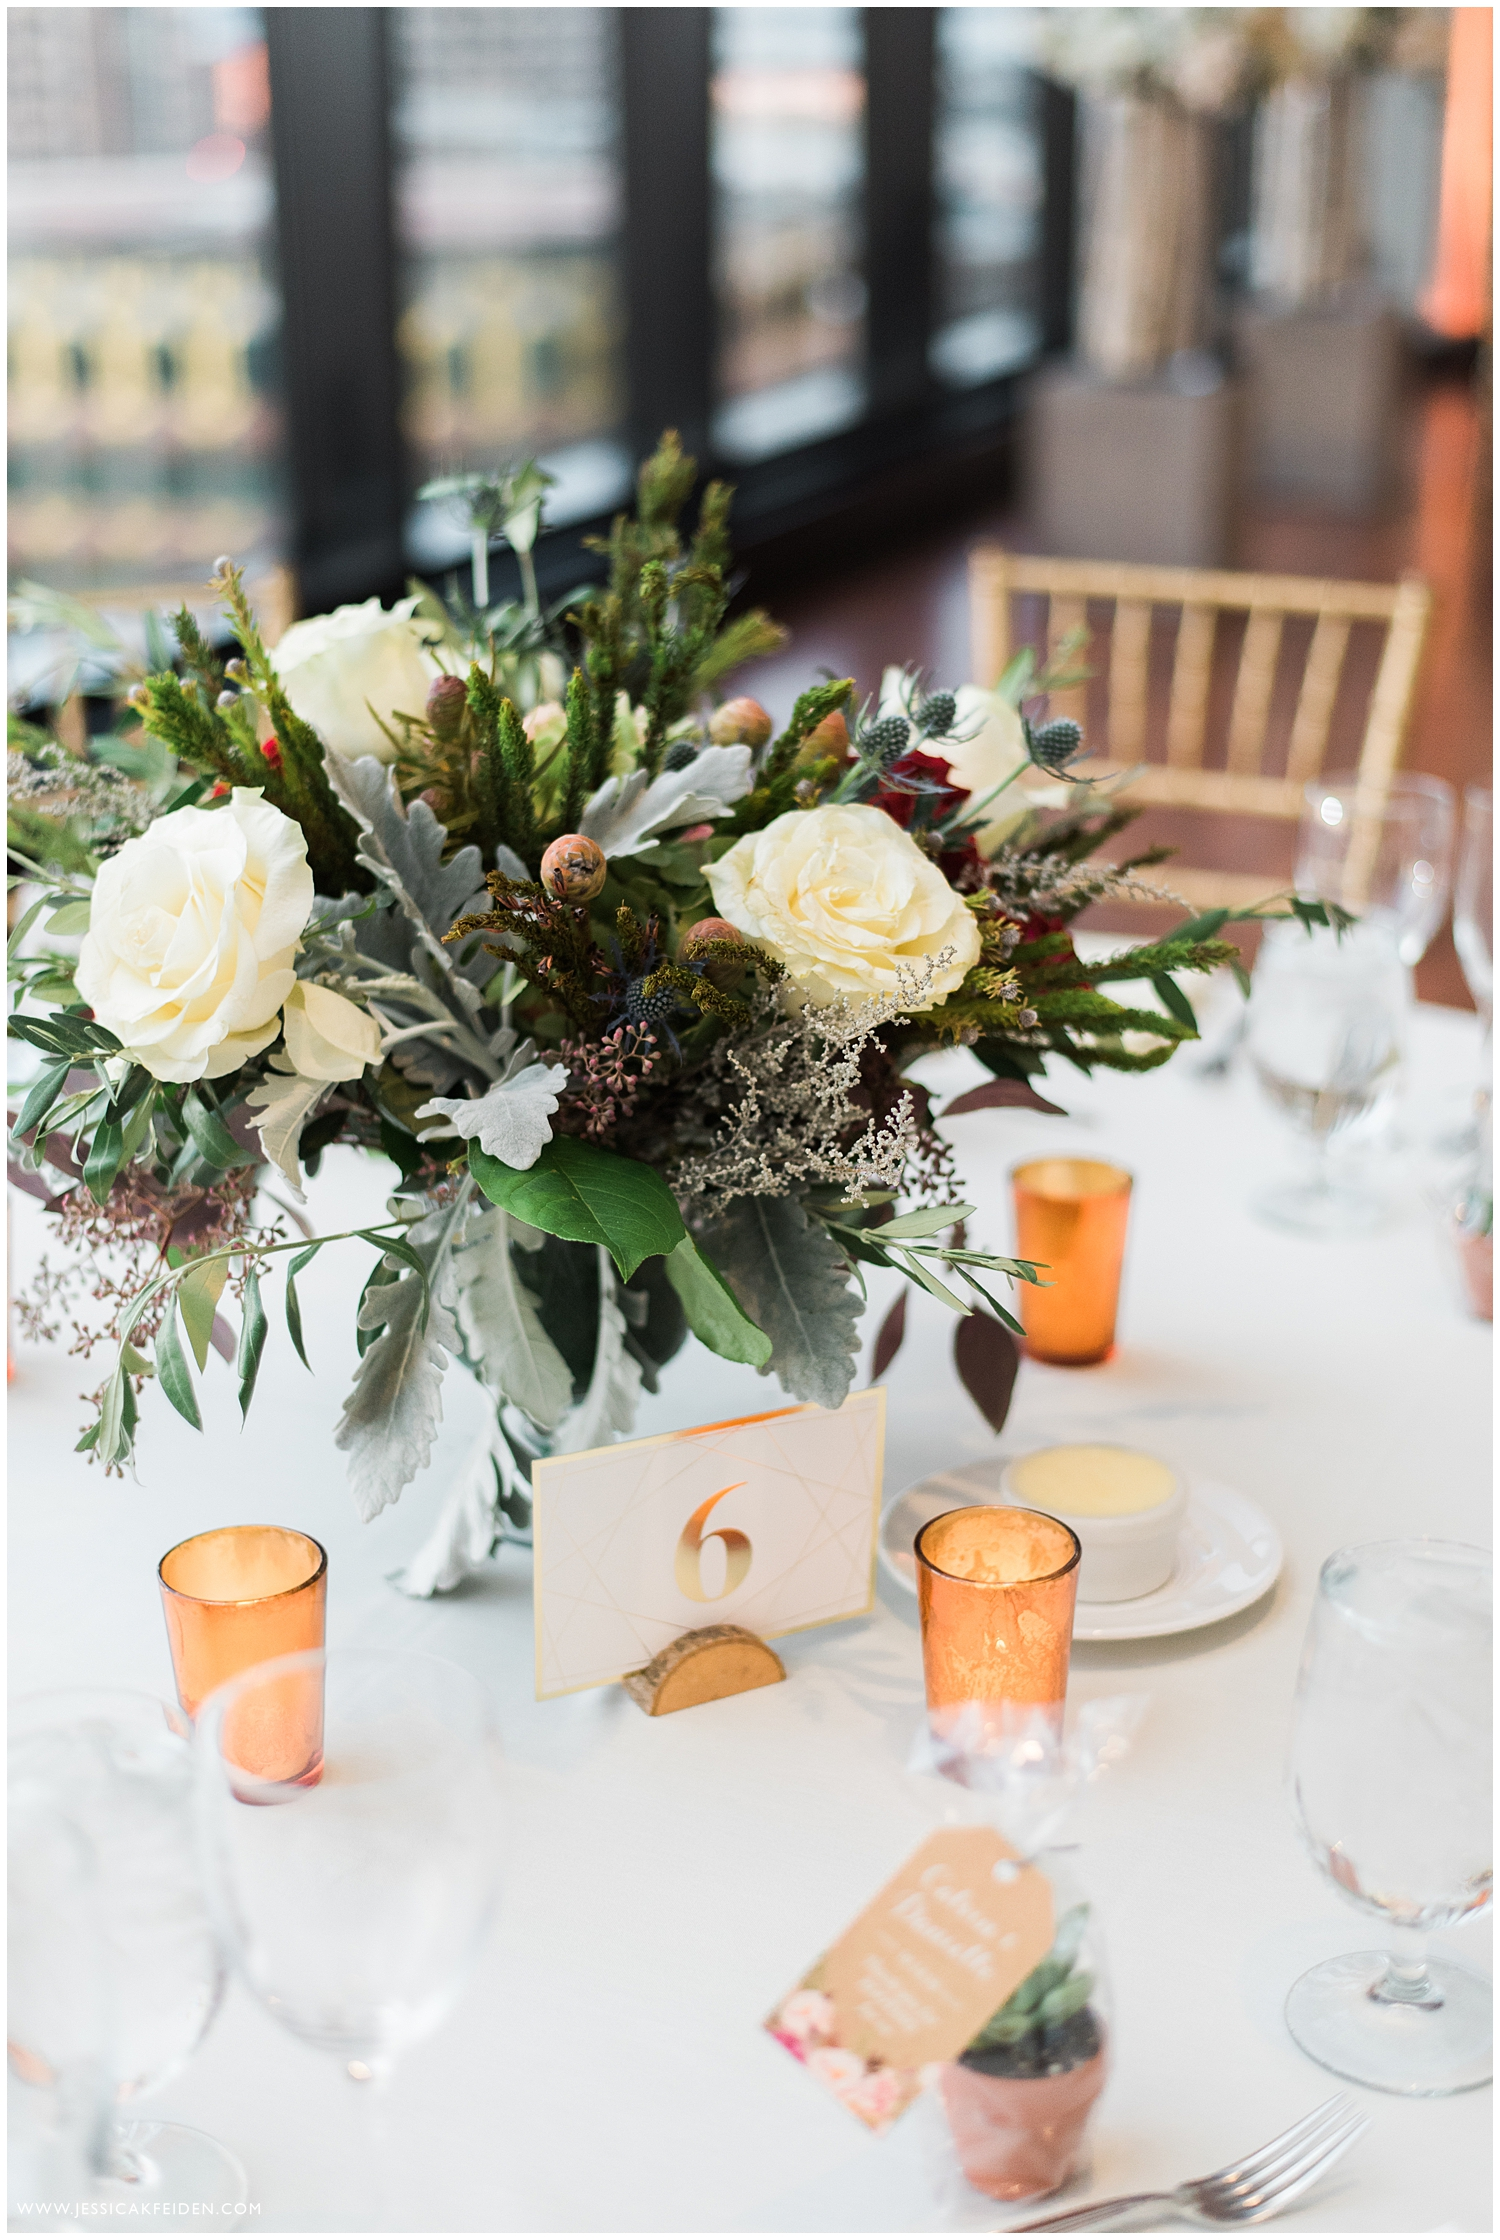 Jessica K Feiden Photography_The State Room Boston Wedding Photographer_0046.jpg